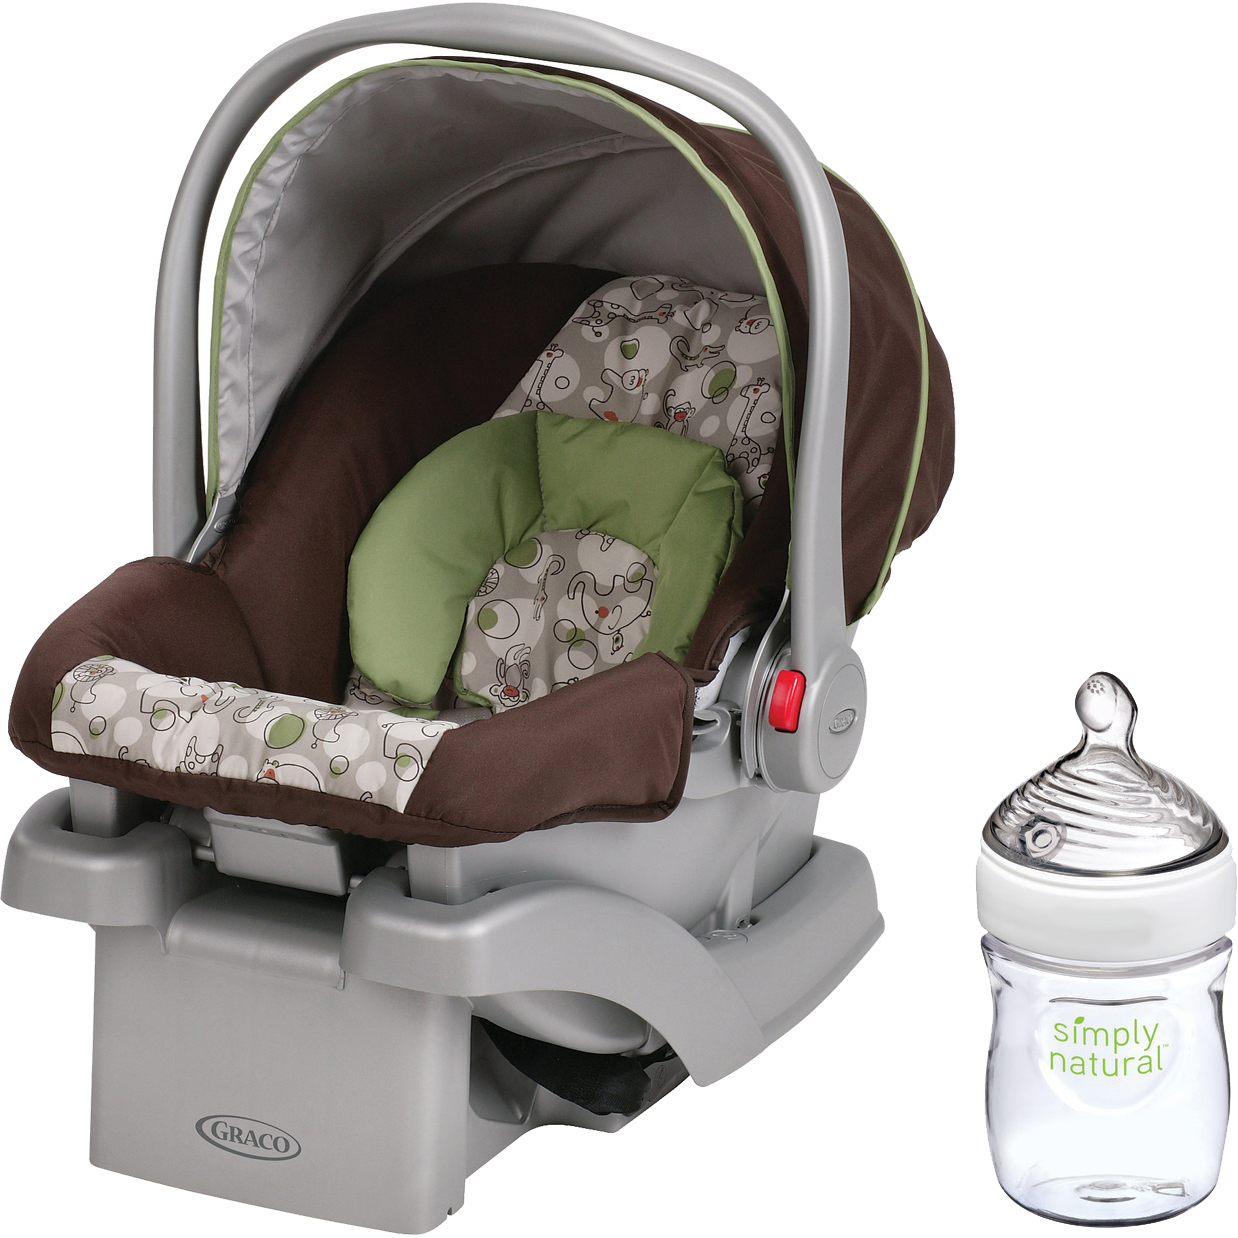 Graco SnugRide Click Connect 30 Infant Car Seat, Choose Your Pattern with Nuk Simply Natural 5oz Bottle, 1 - Pack